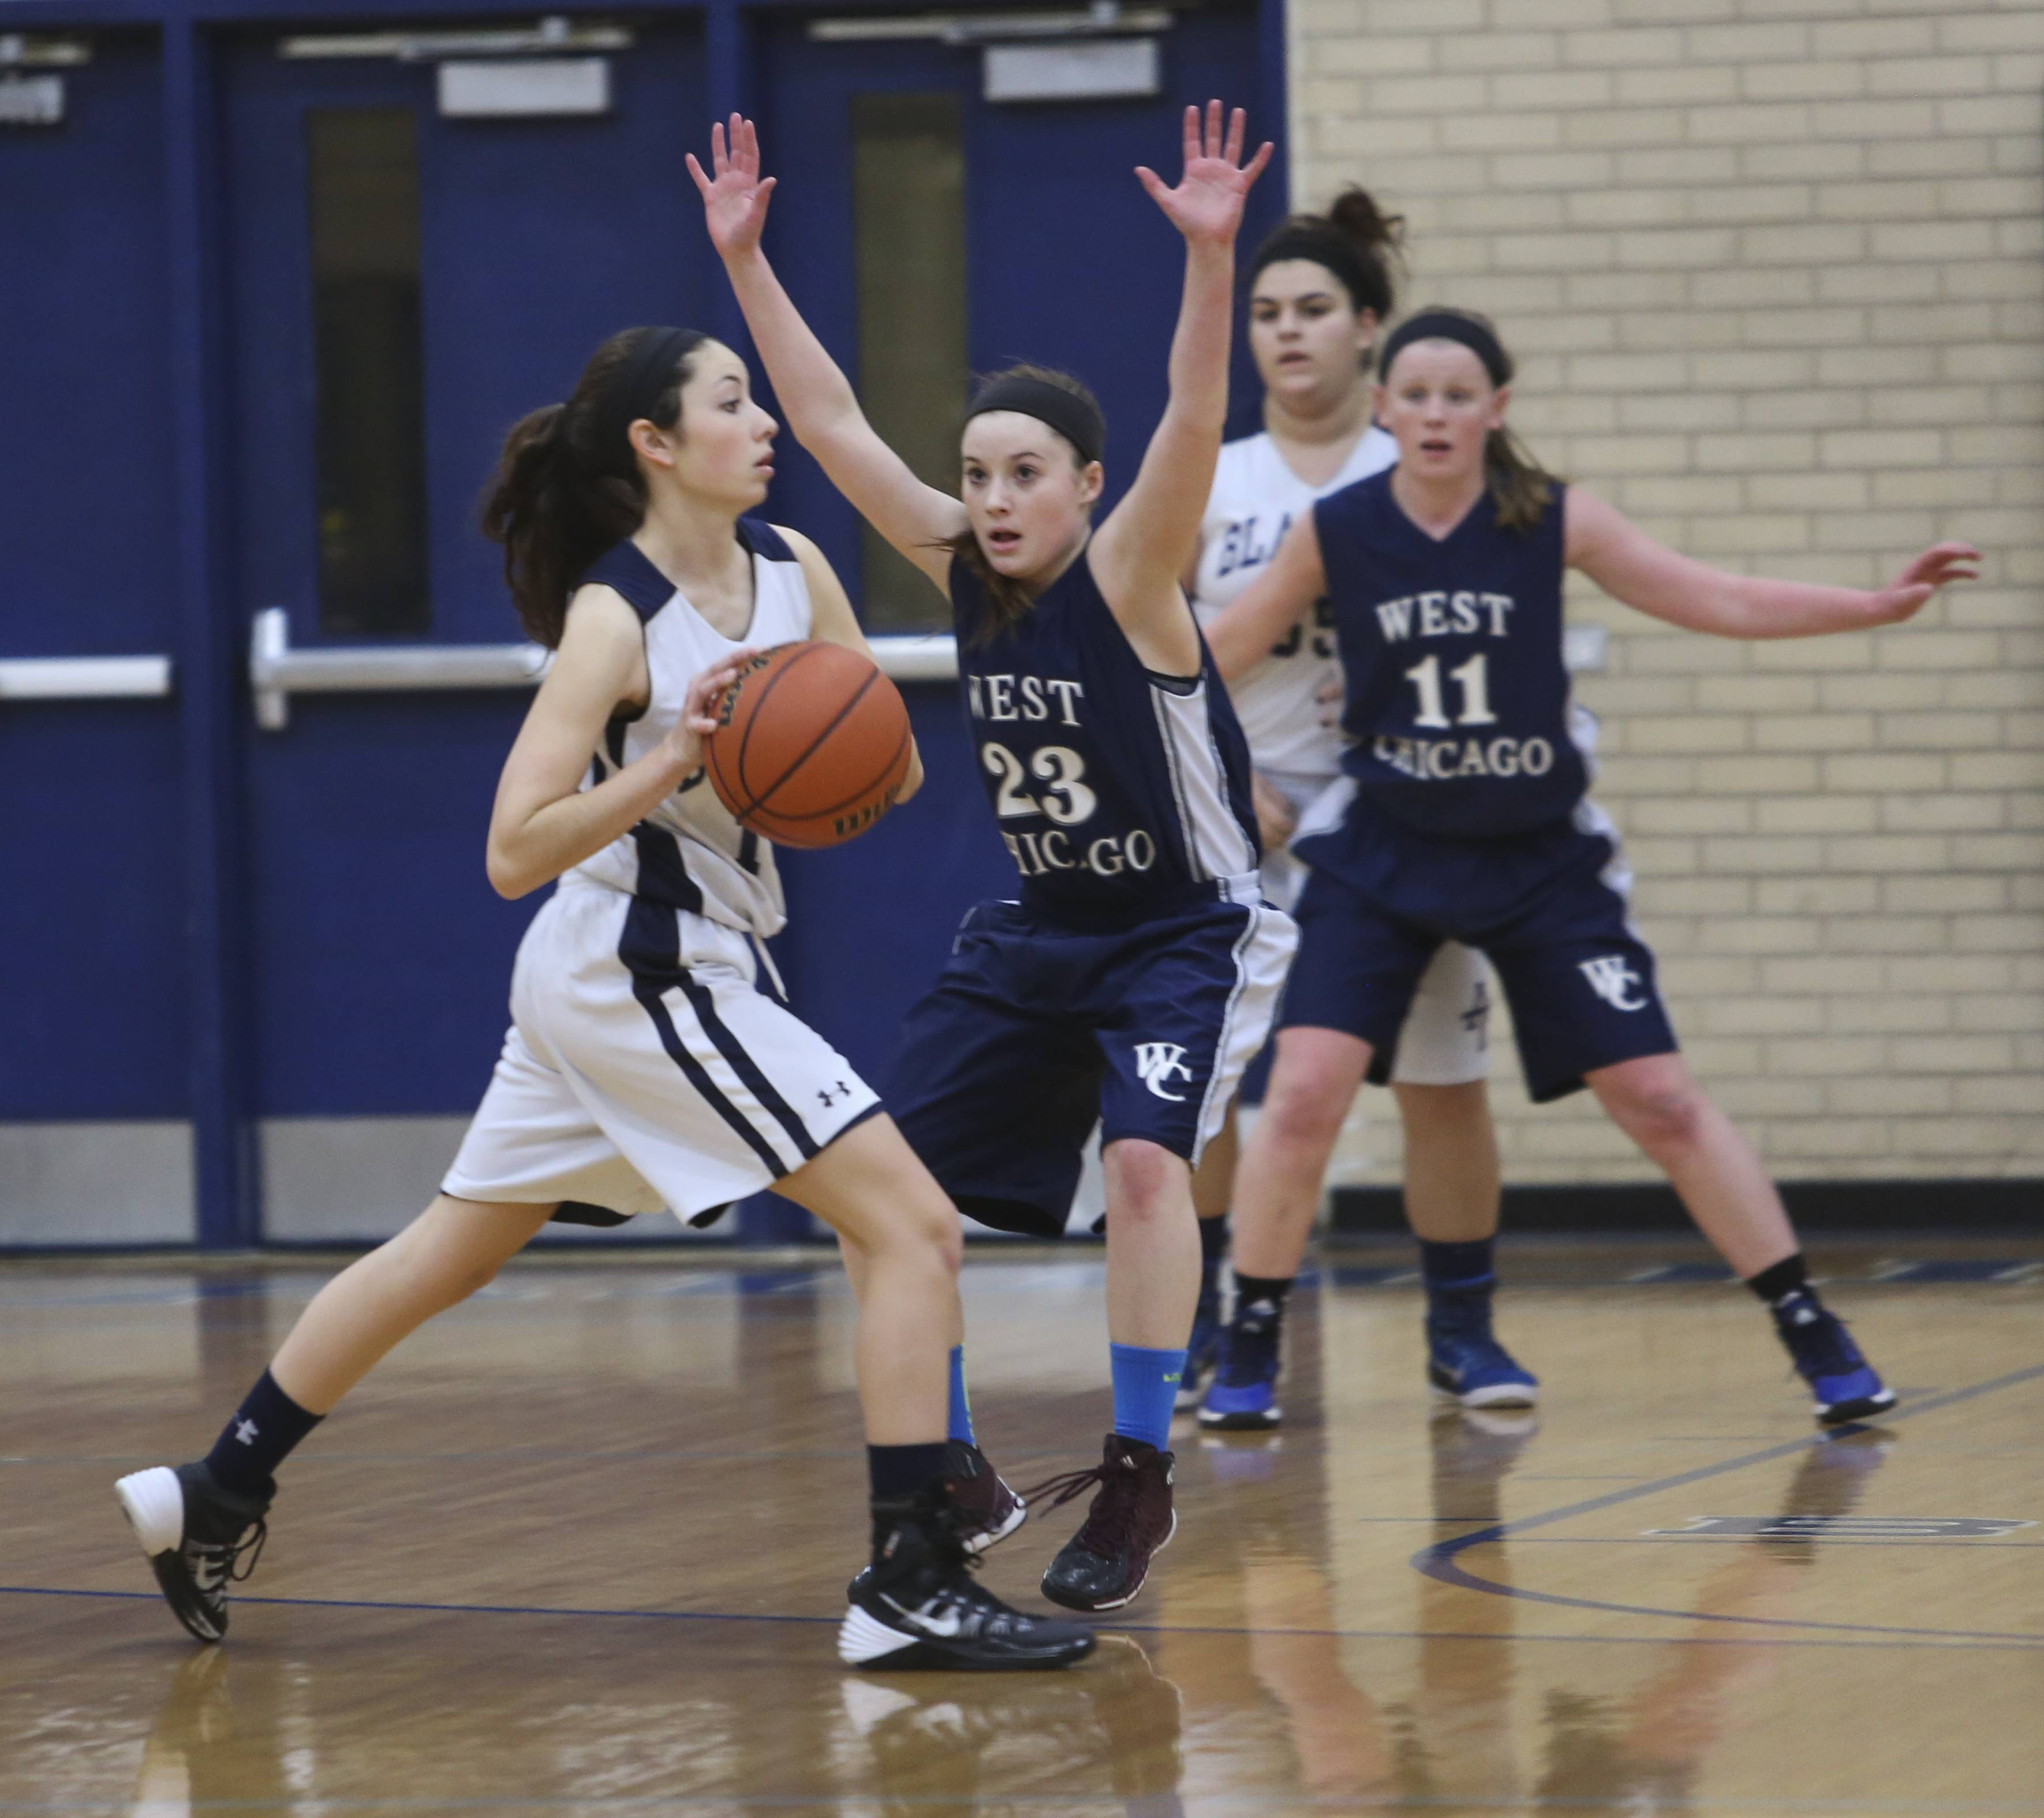 Addison Trail hosted West Chicago Tuesday night for girls basketball.